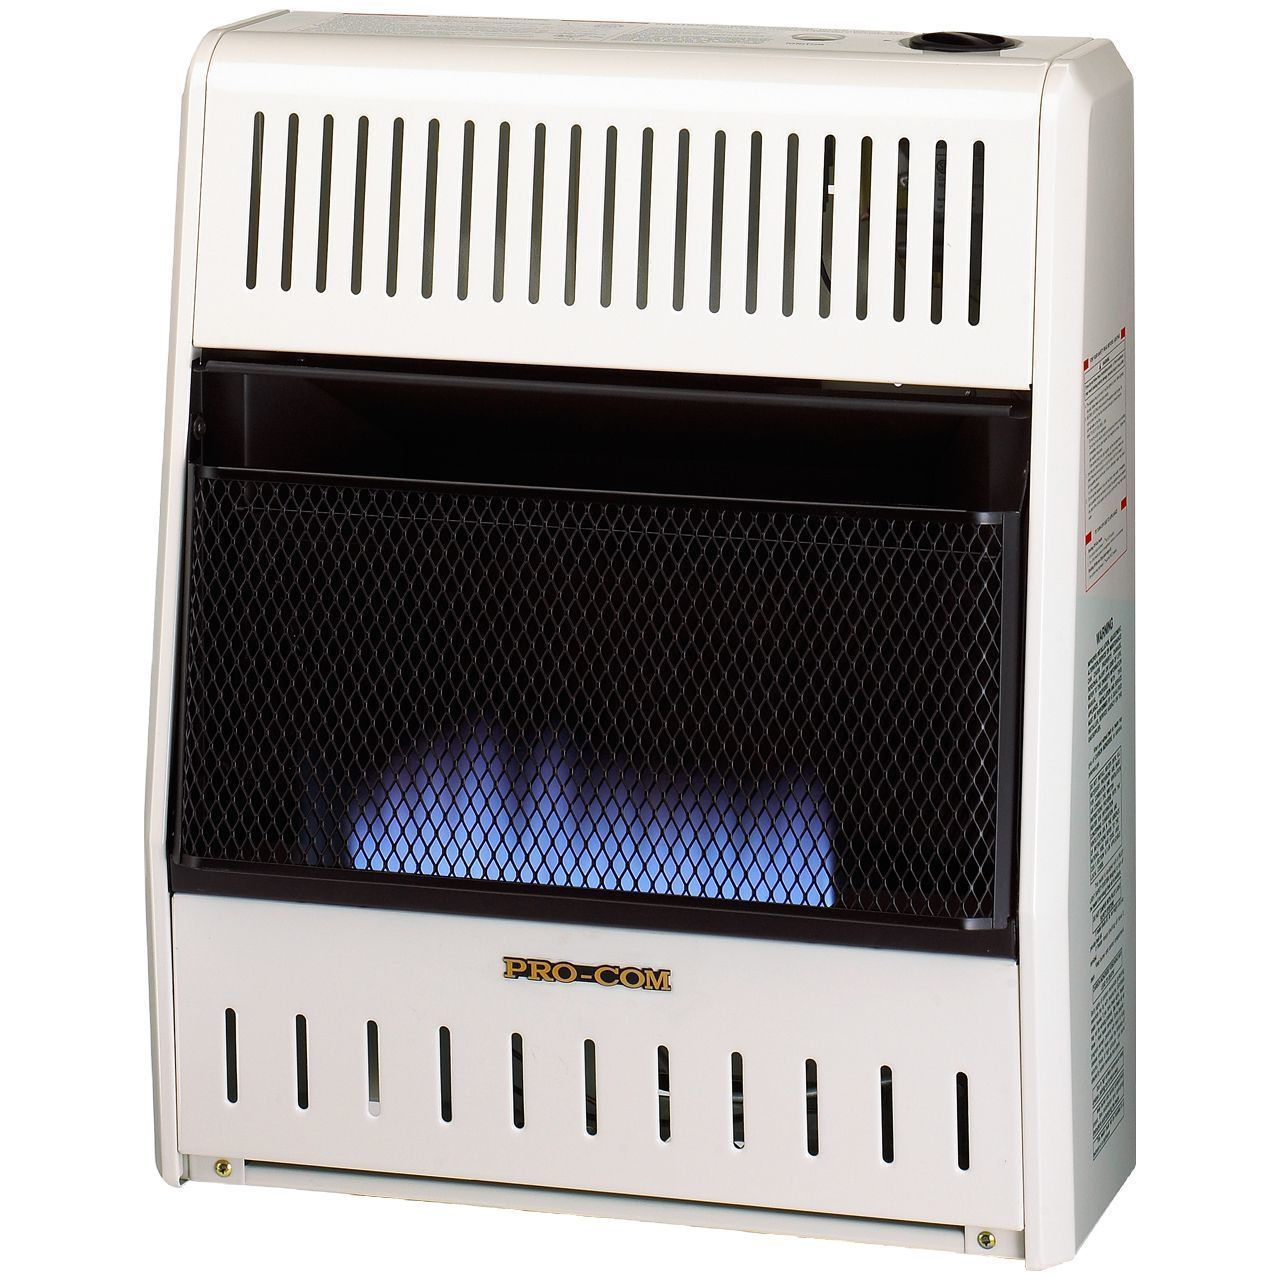 Details about MN200HBA Ventless Natural Gas Blue